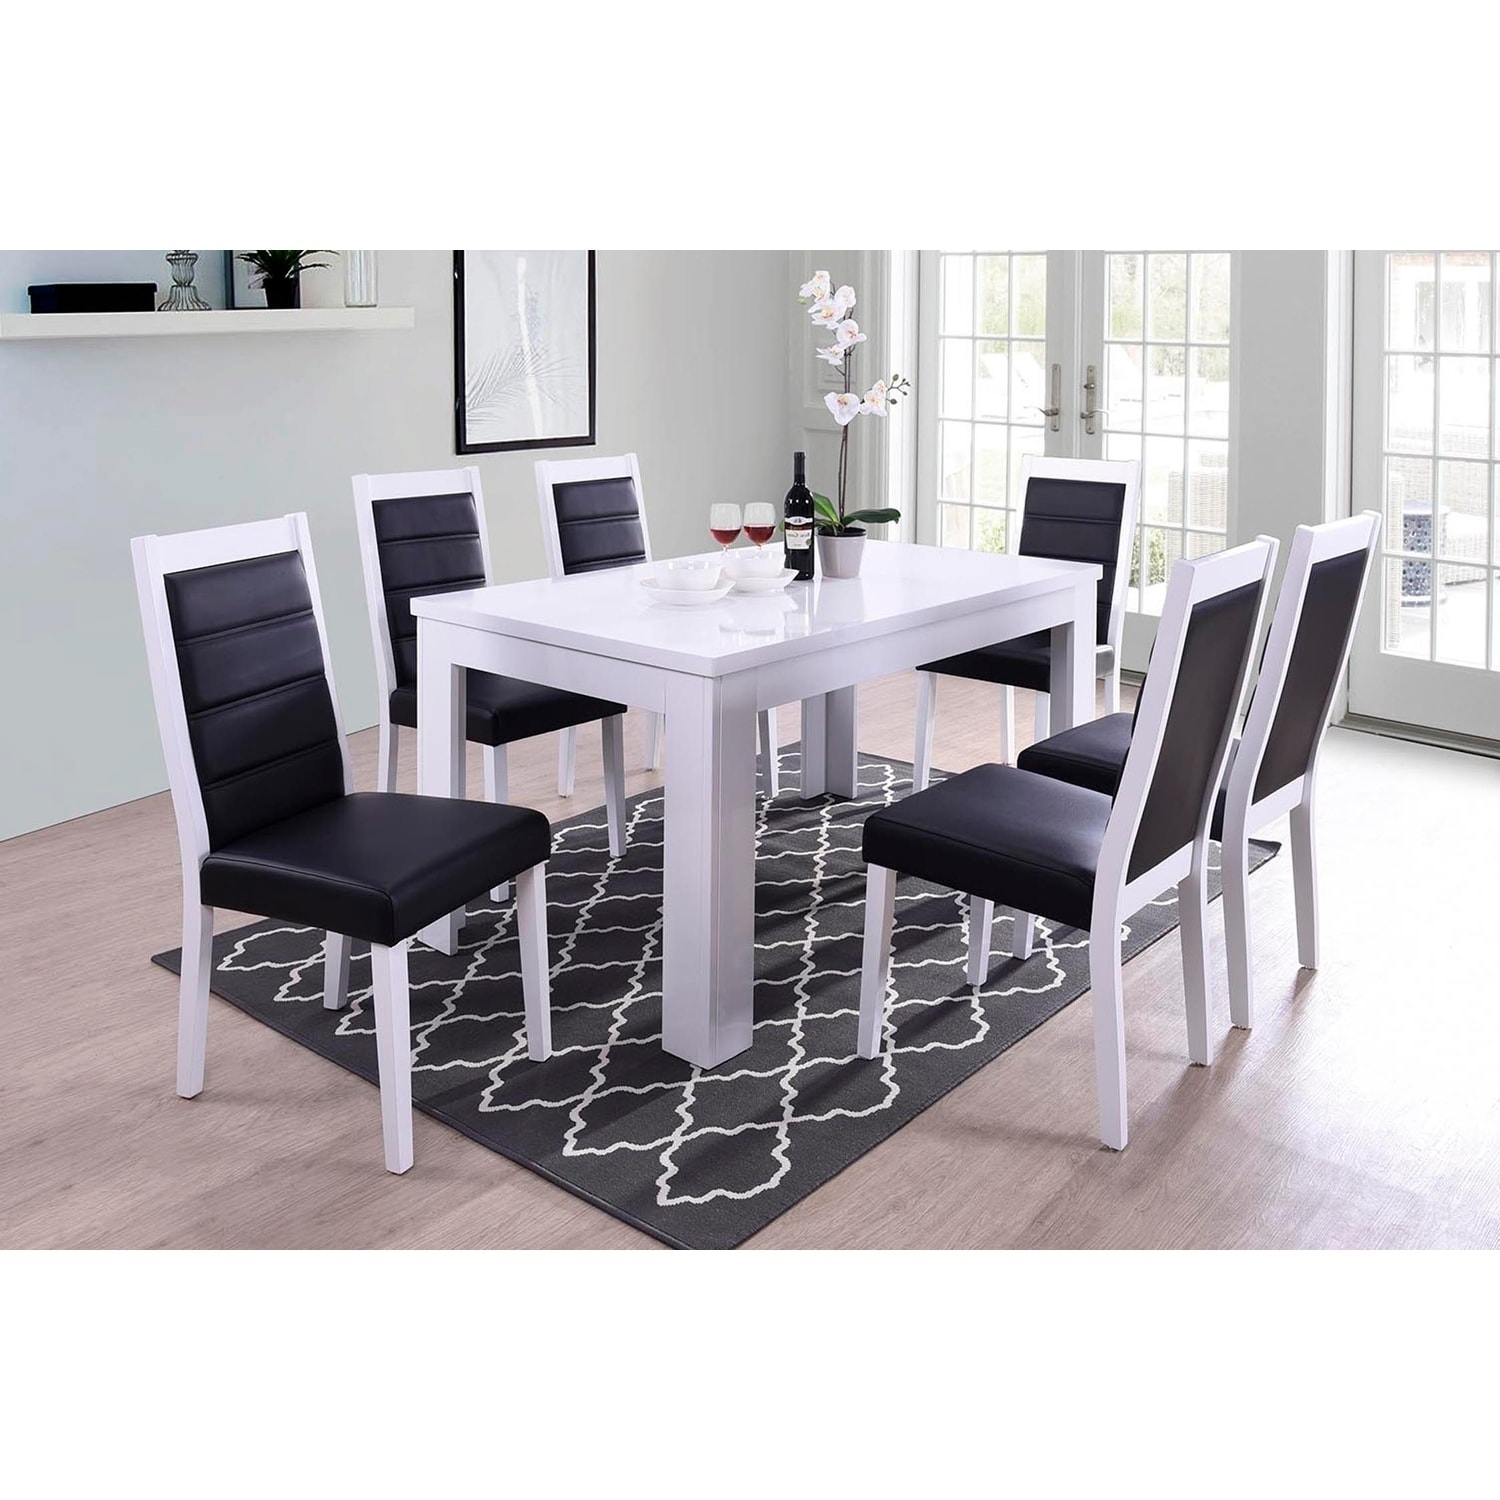 Shop Indoor Black And White Modern 7pc Dining Set With A Solid Wood Rectangular Dining Table And 6 Upholstered Dining Chairs Overstock 23507526